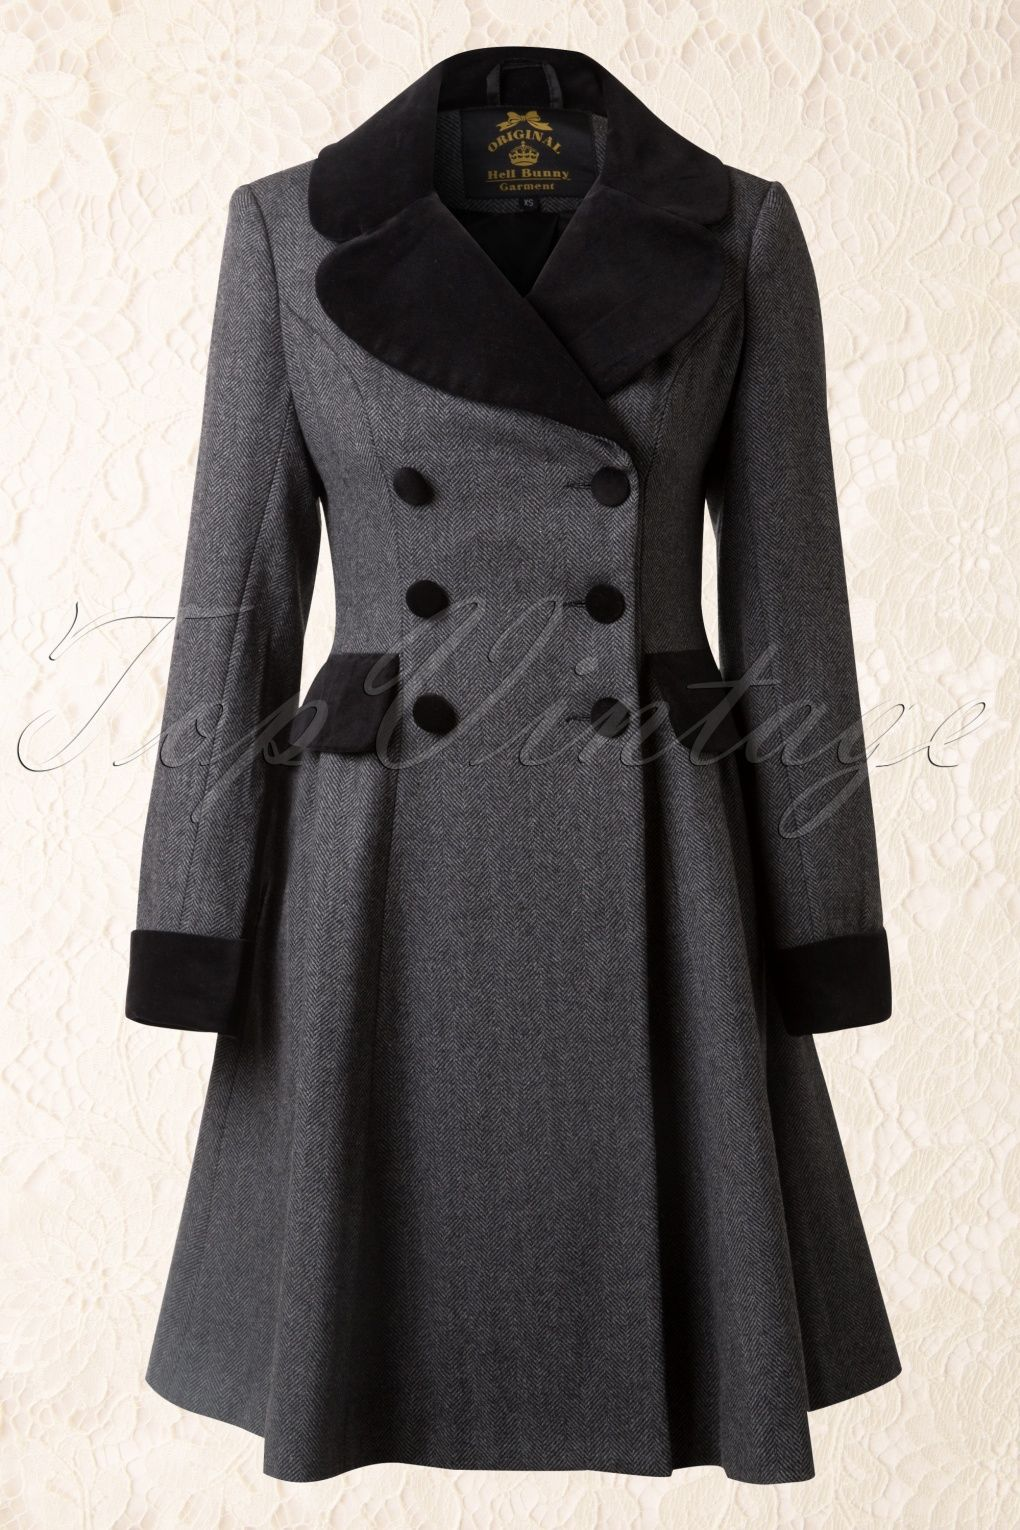 50s Amazon Swing Coat in Grey and Black Wool | Mäntel, 50er jahre ...